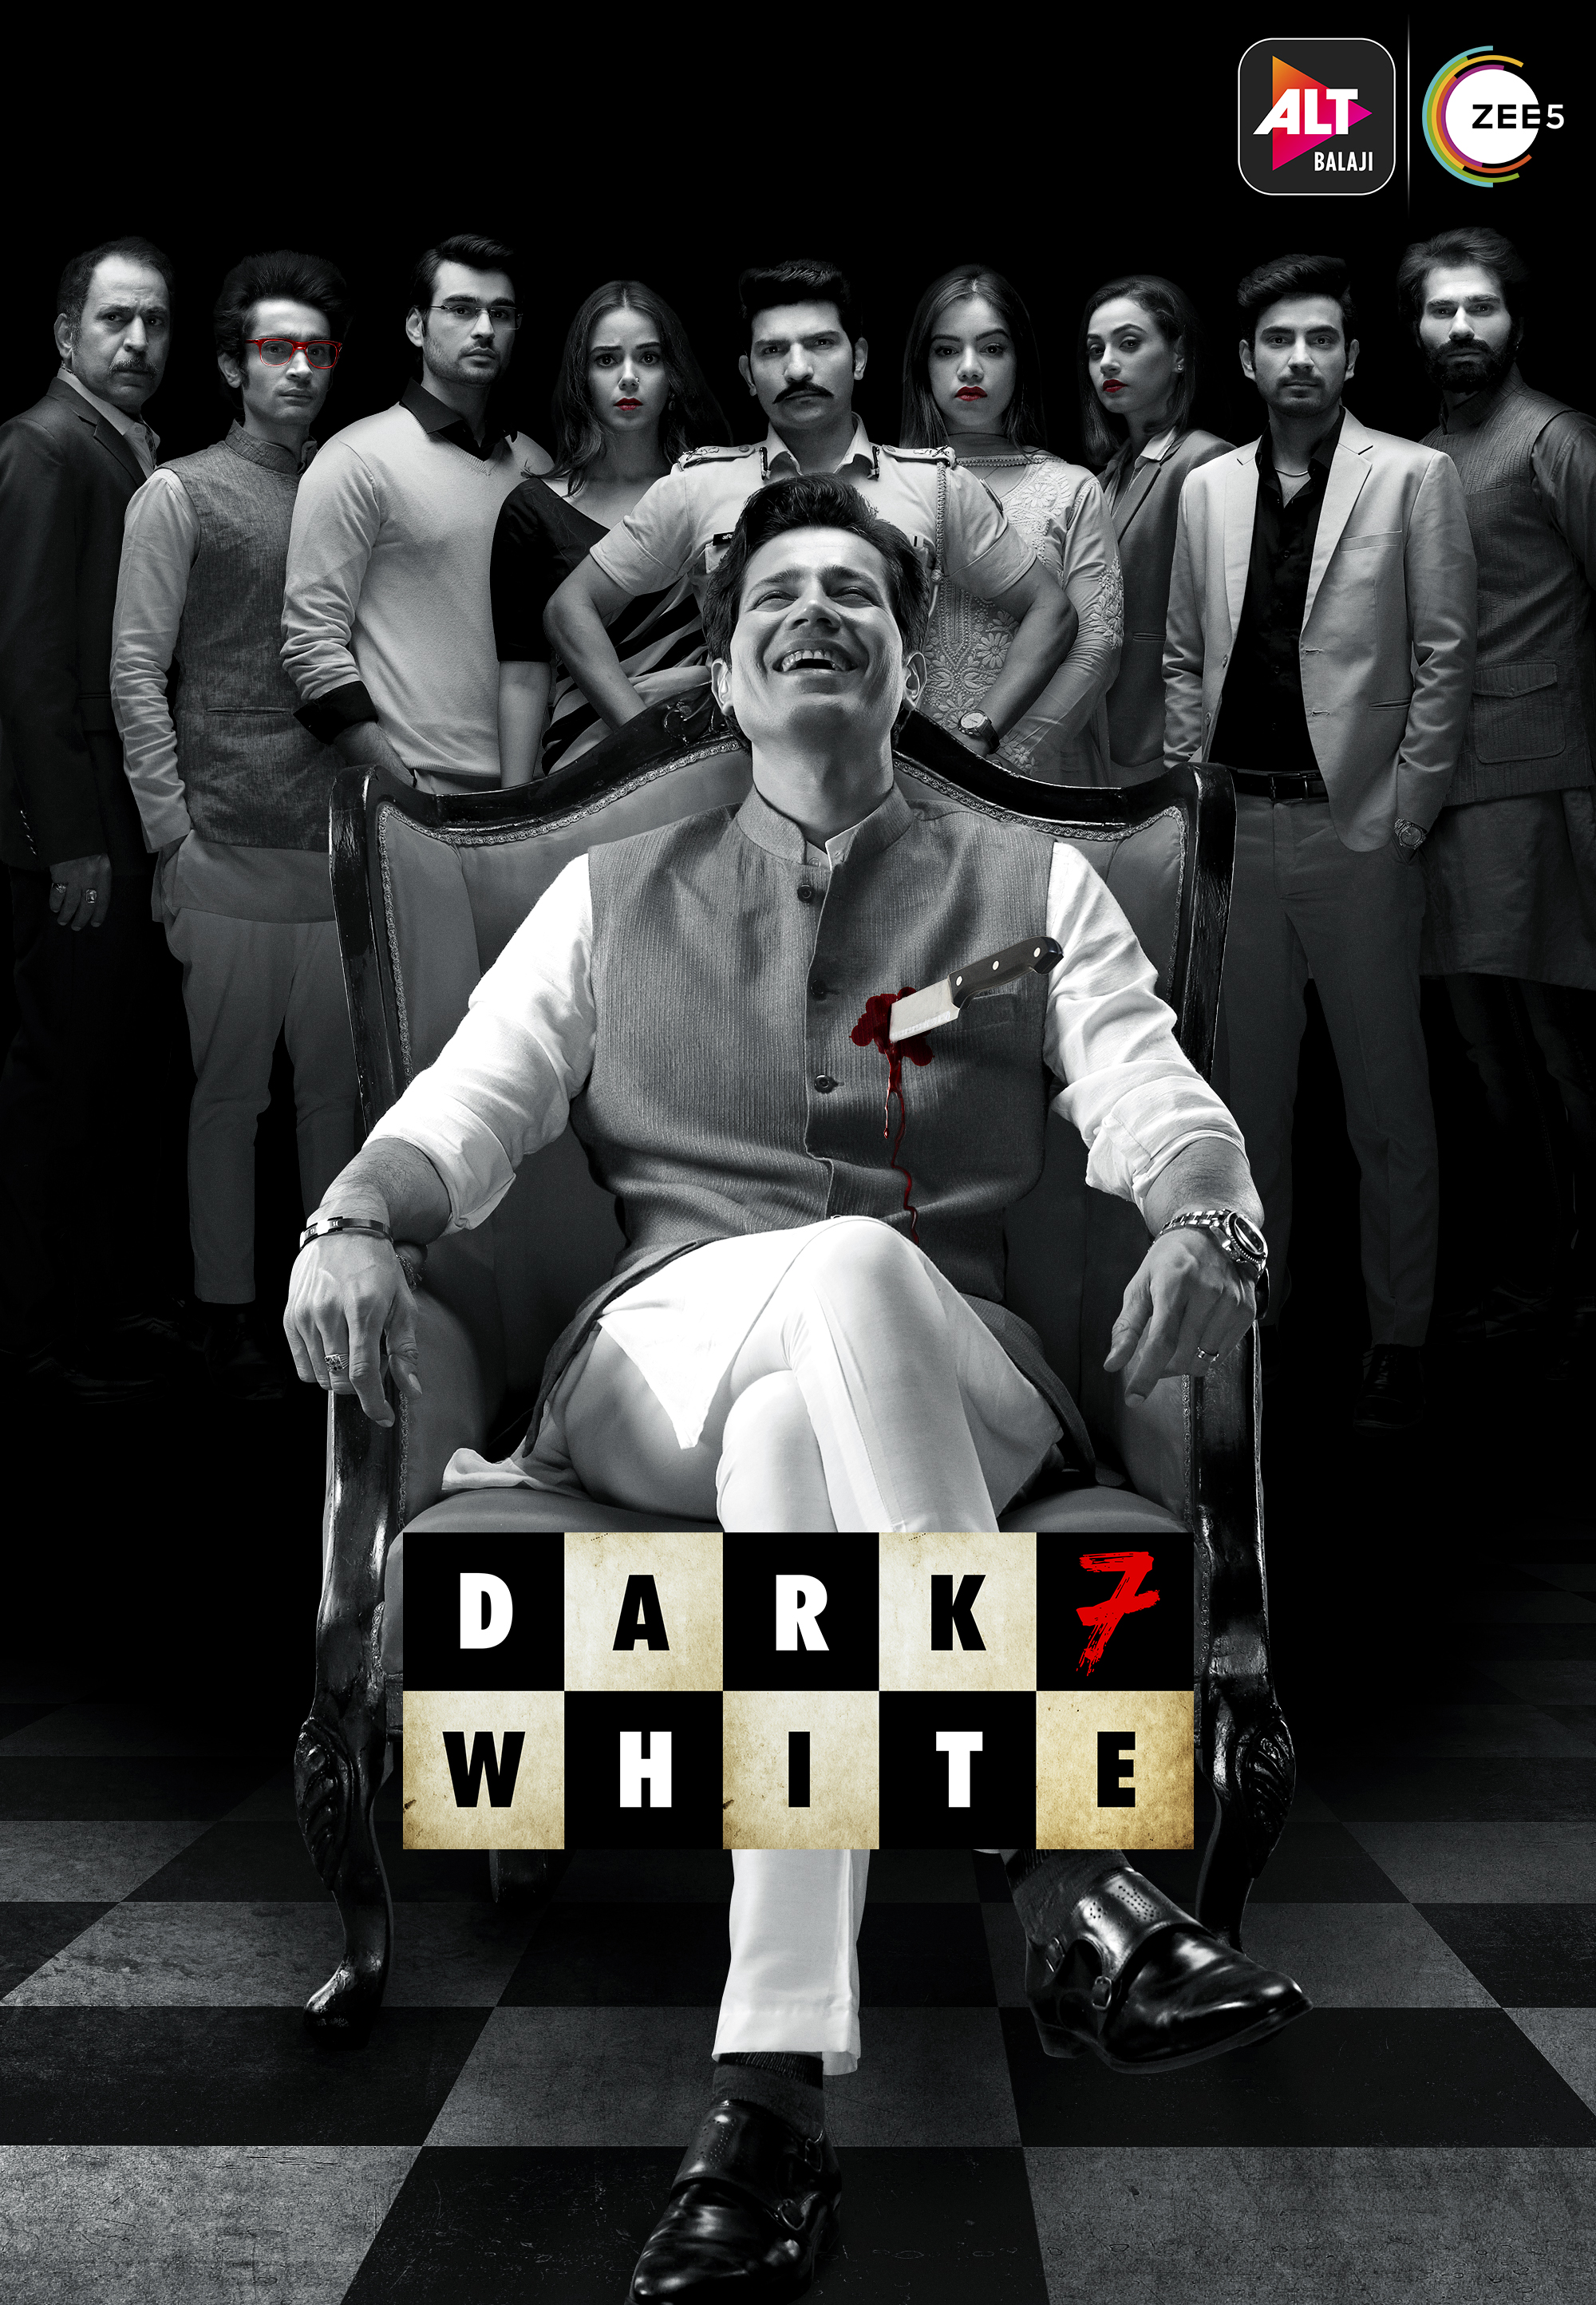 18+ Dark 7 White 2020 S01 Hindi Complete ALTBalaji Original Hot Web Series 720p HDRip 1GB x264 MKV